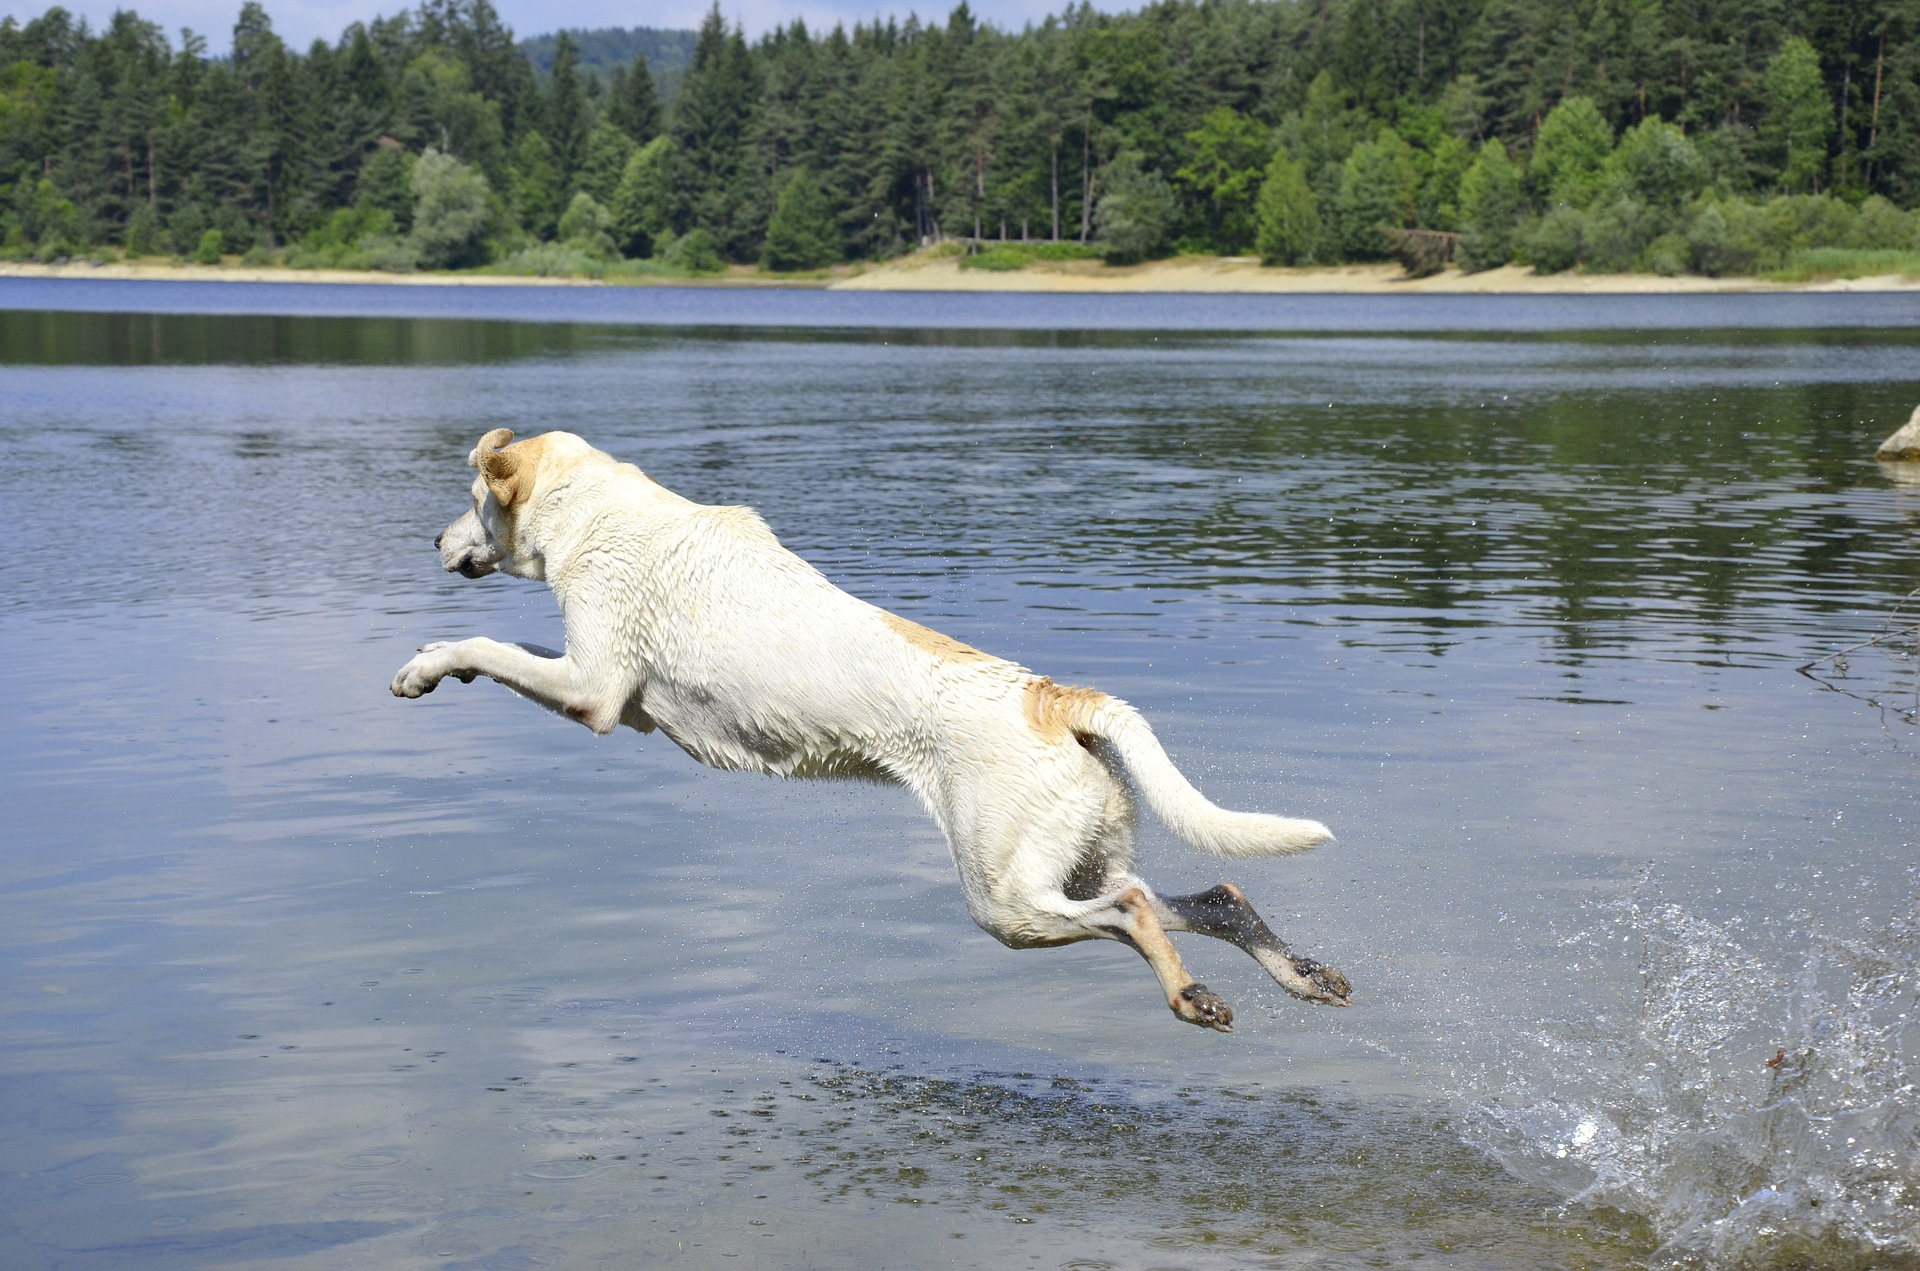 Dock diving should be all about fun for your dog!